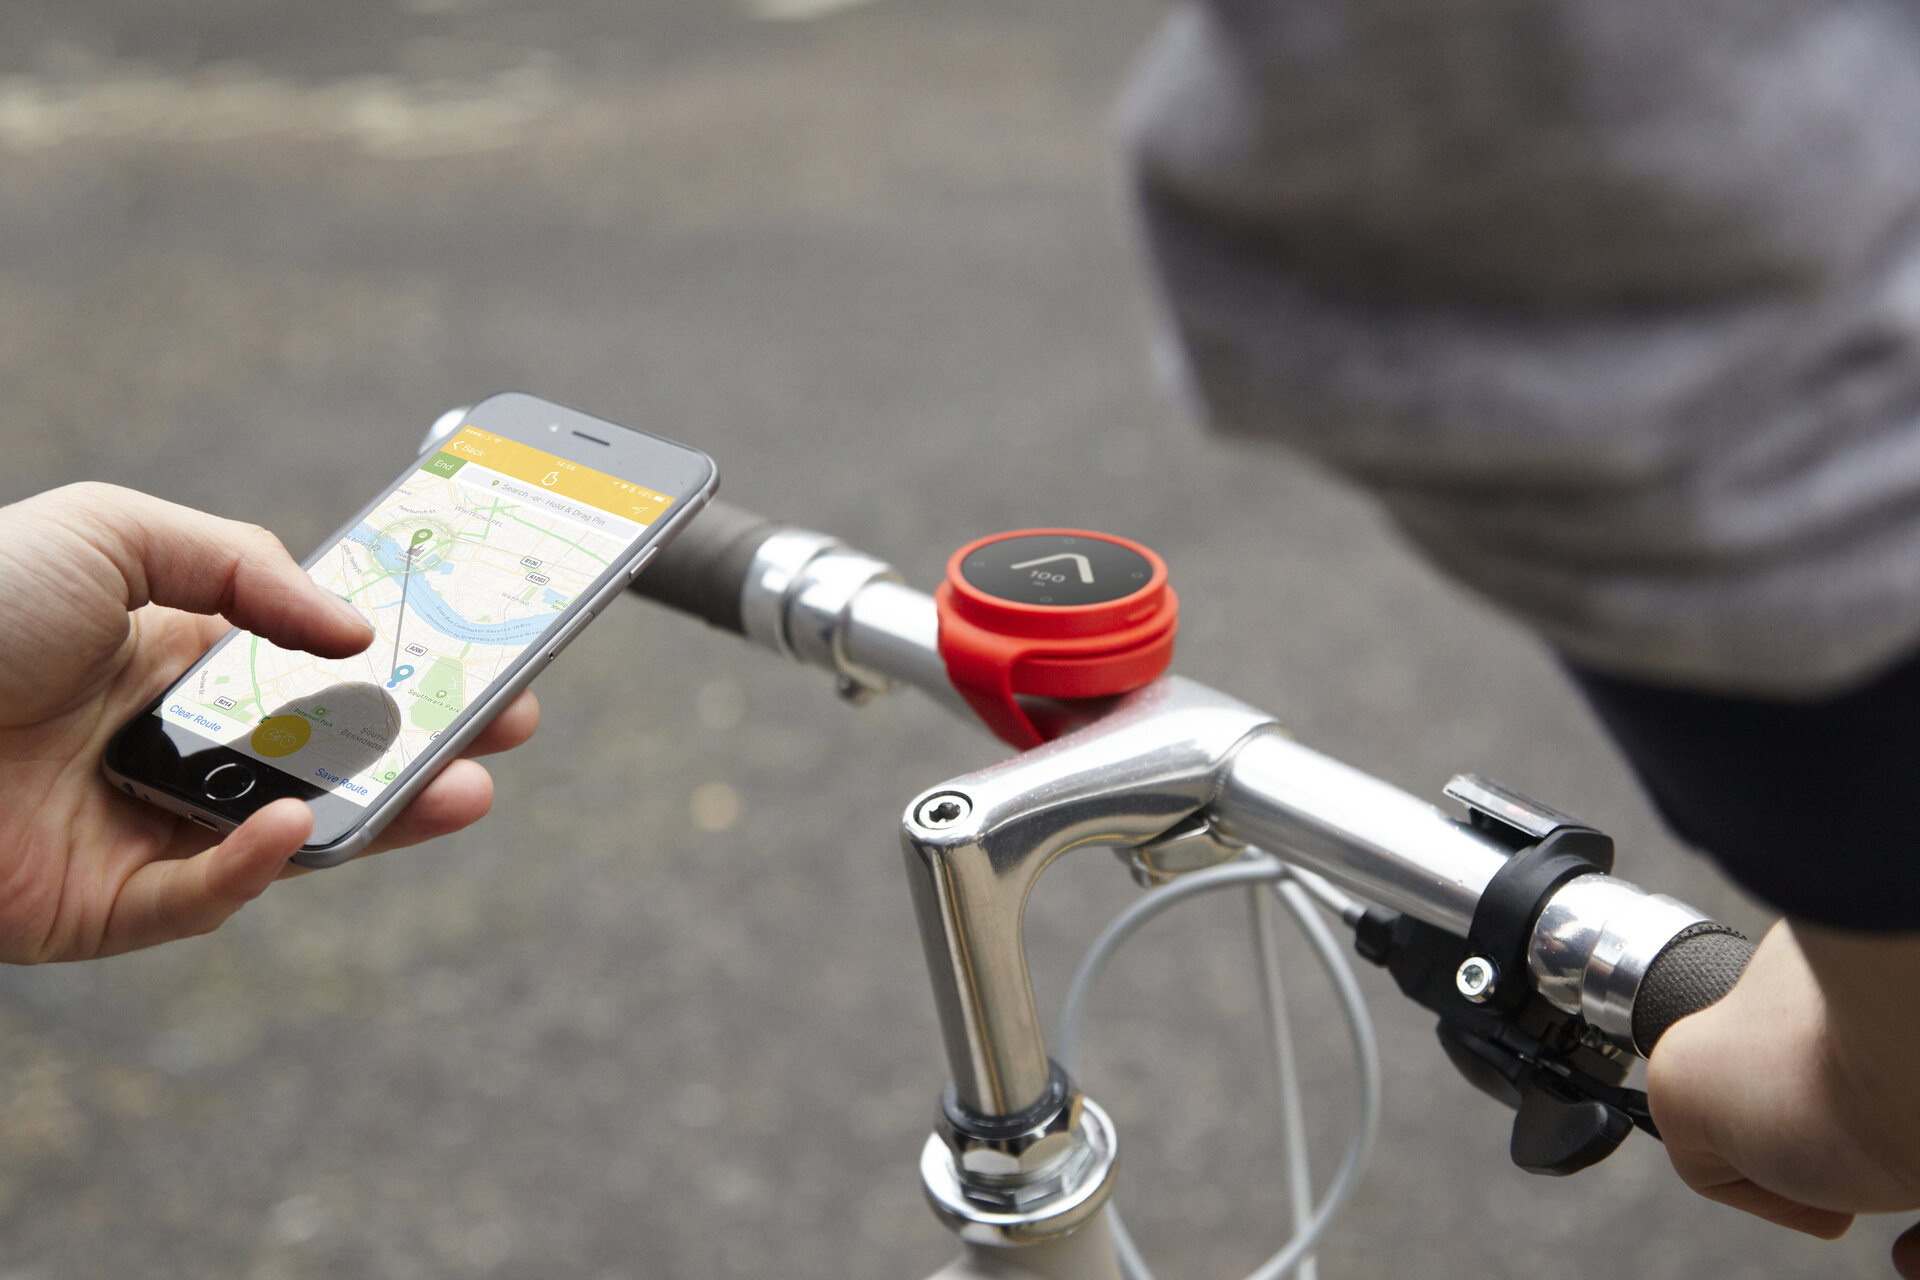 The app calculates the best route and gives navigation directions for cyclists